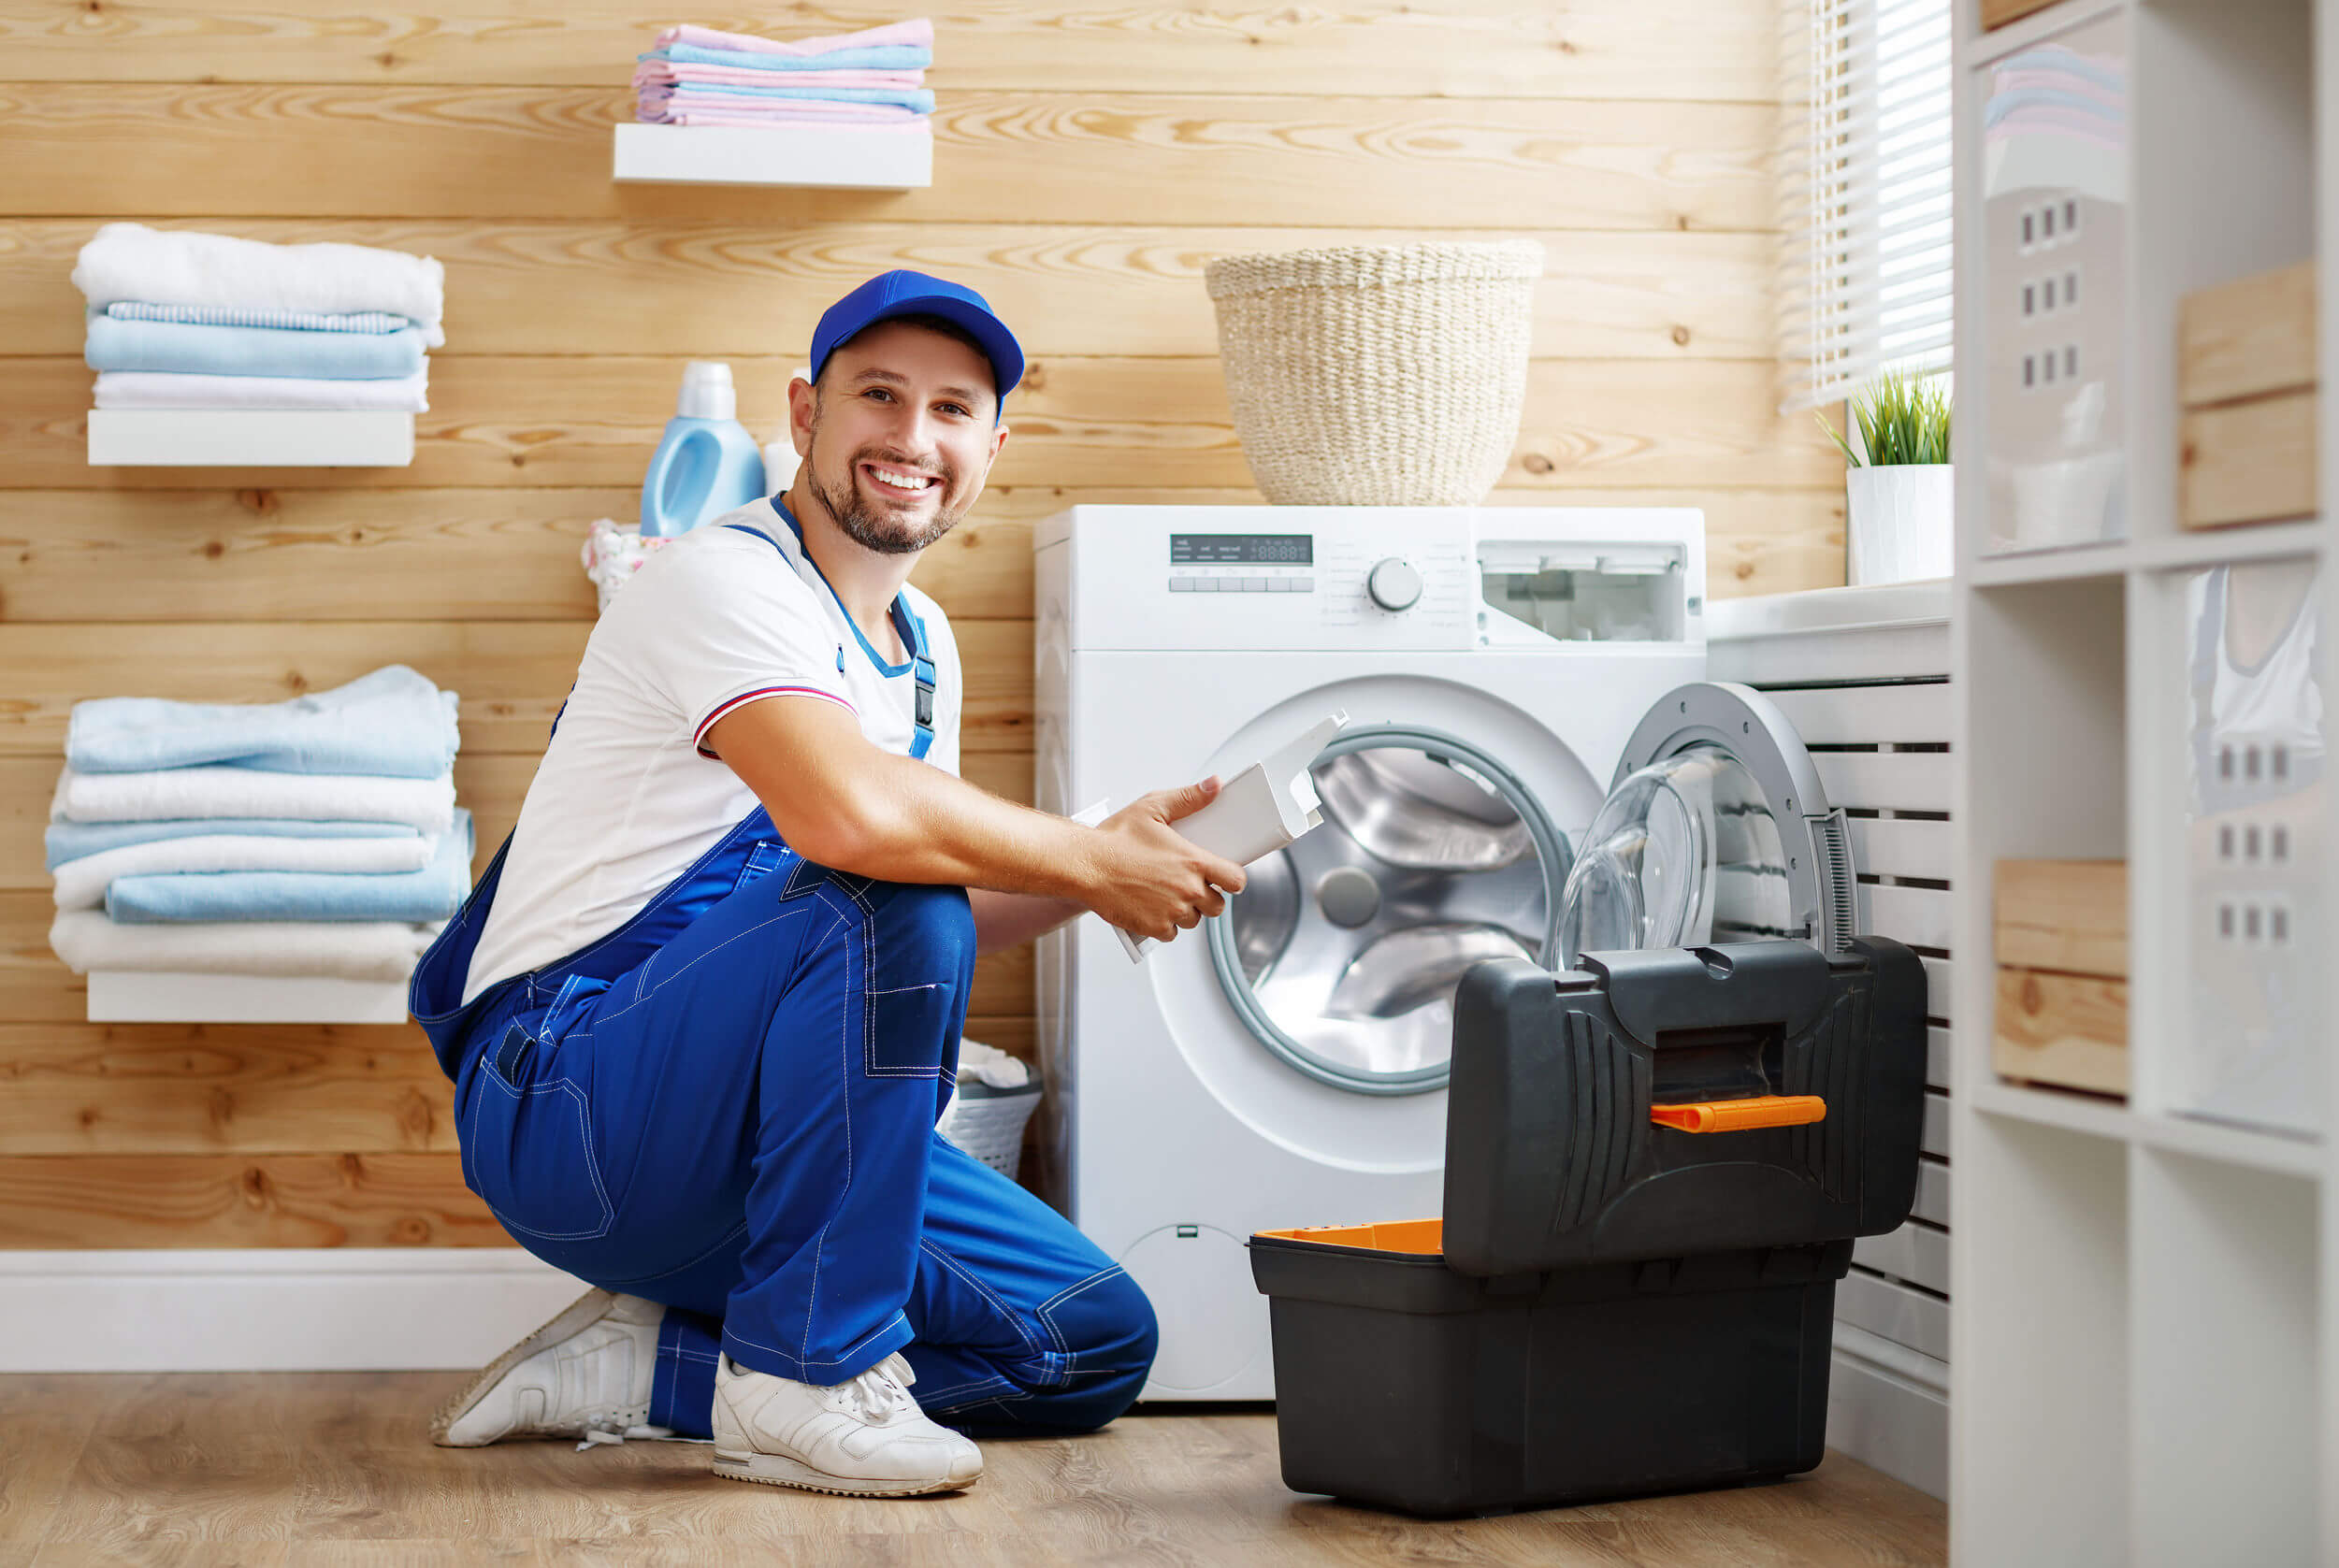 IFB washing machine repair center in Mumbai maharashtra